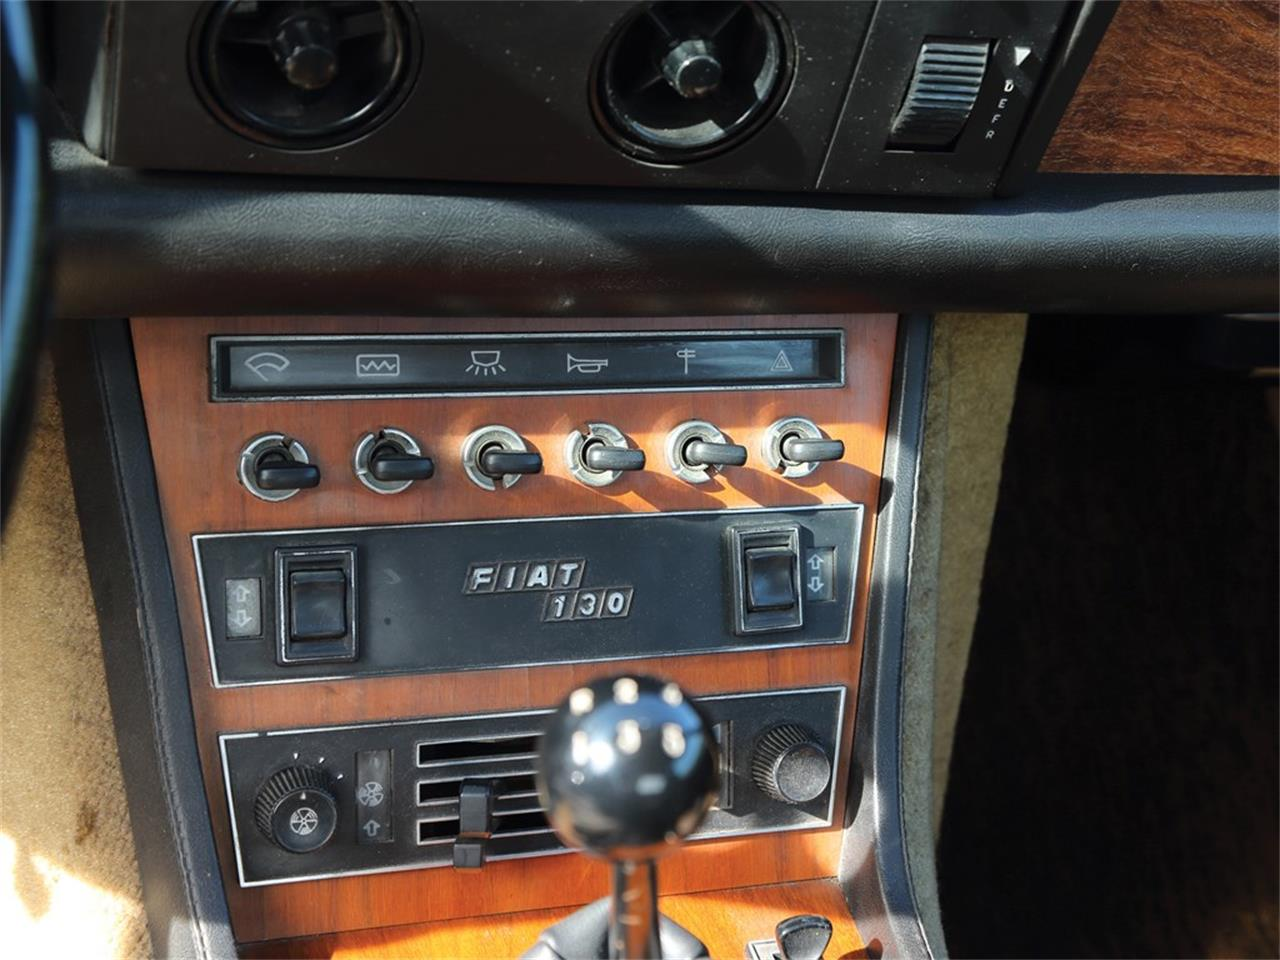 1973 Fiat 130 for sale in Essen, Other – photo 11